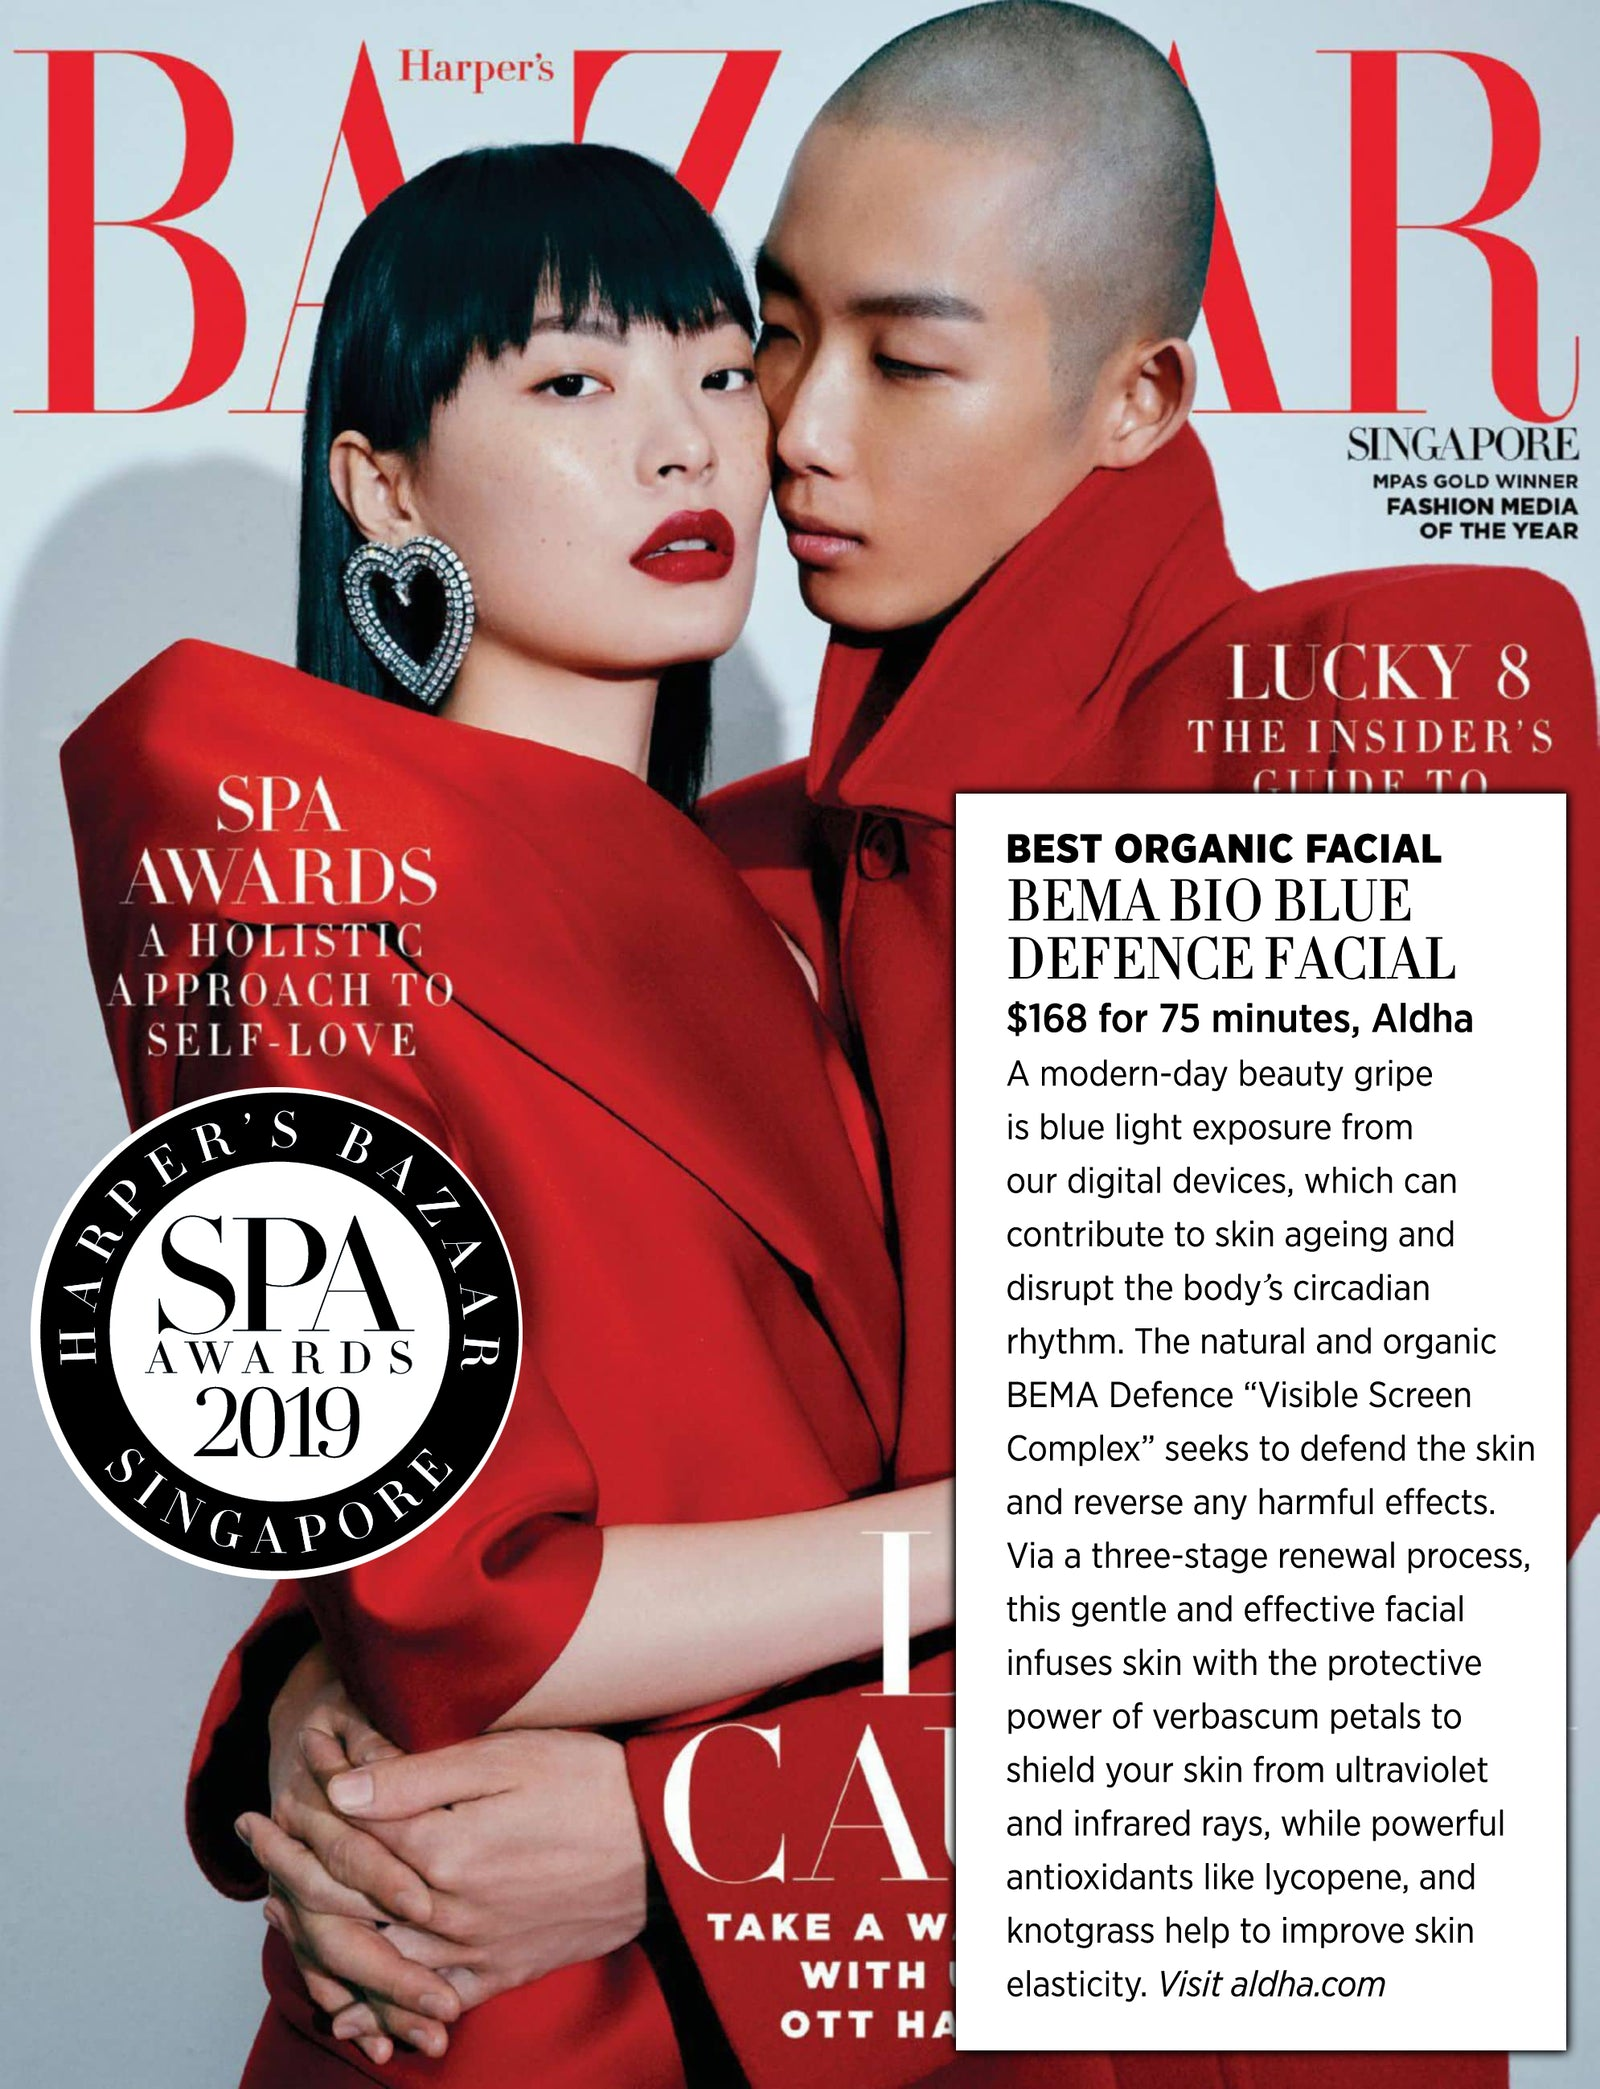 2019 Harper's Bazaar Spa Awards Best Organic Facial Winner Bema Bio Blue Defence Facial